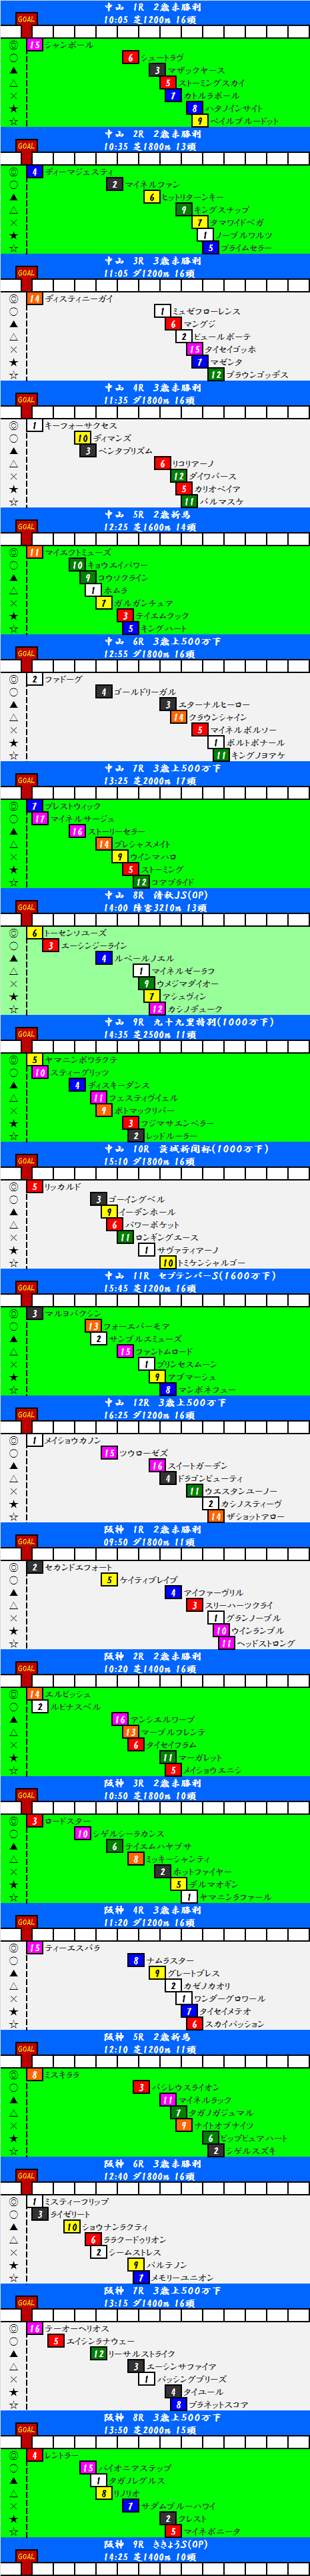 2015092601.png